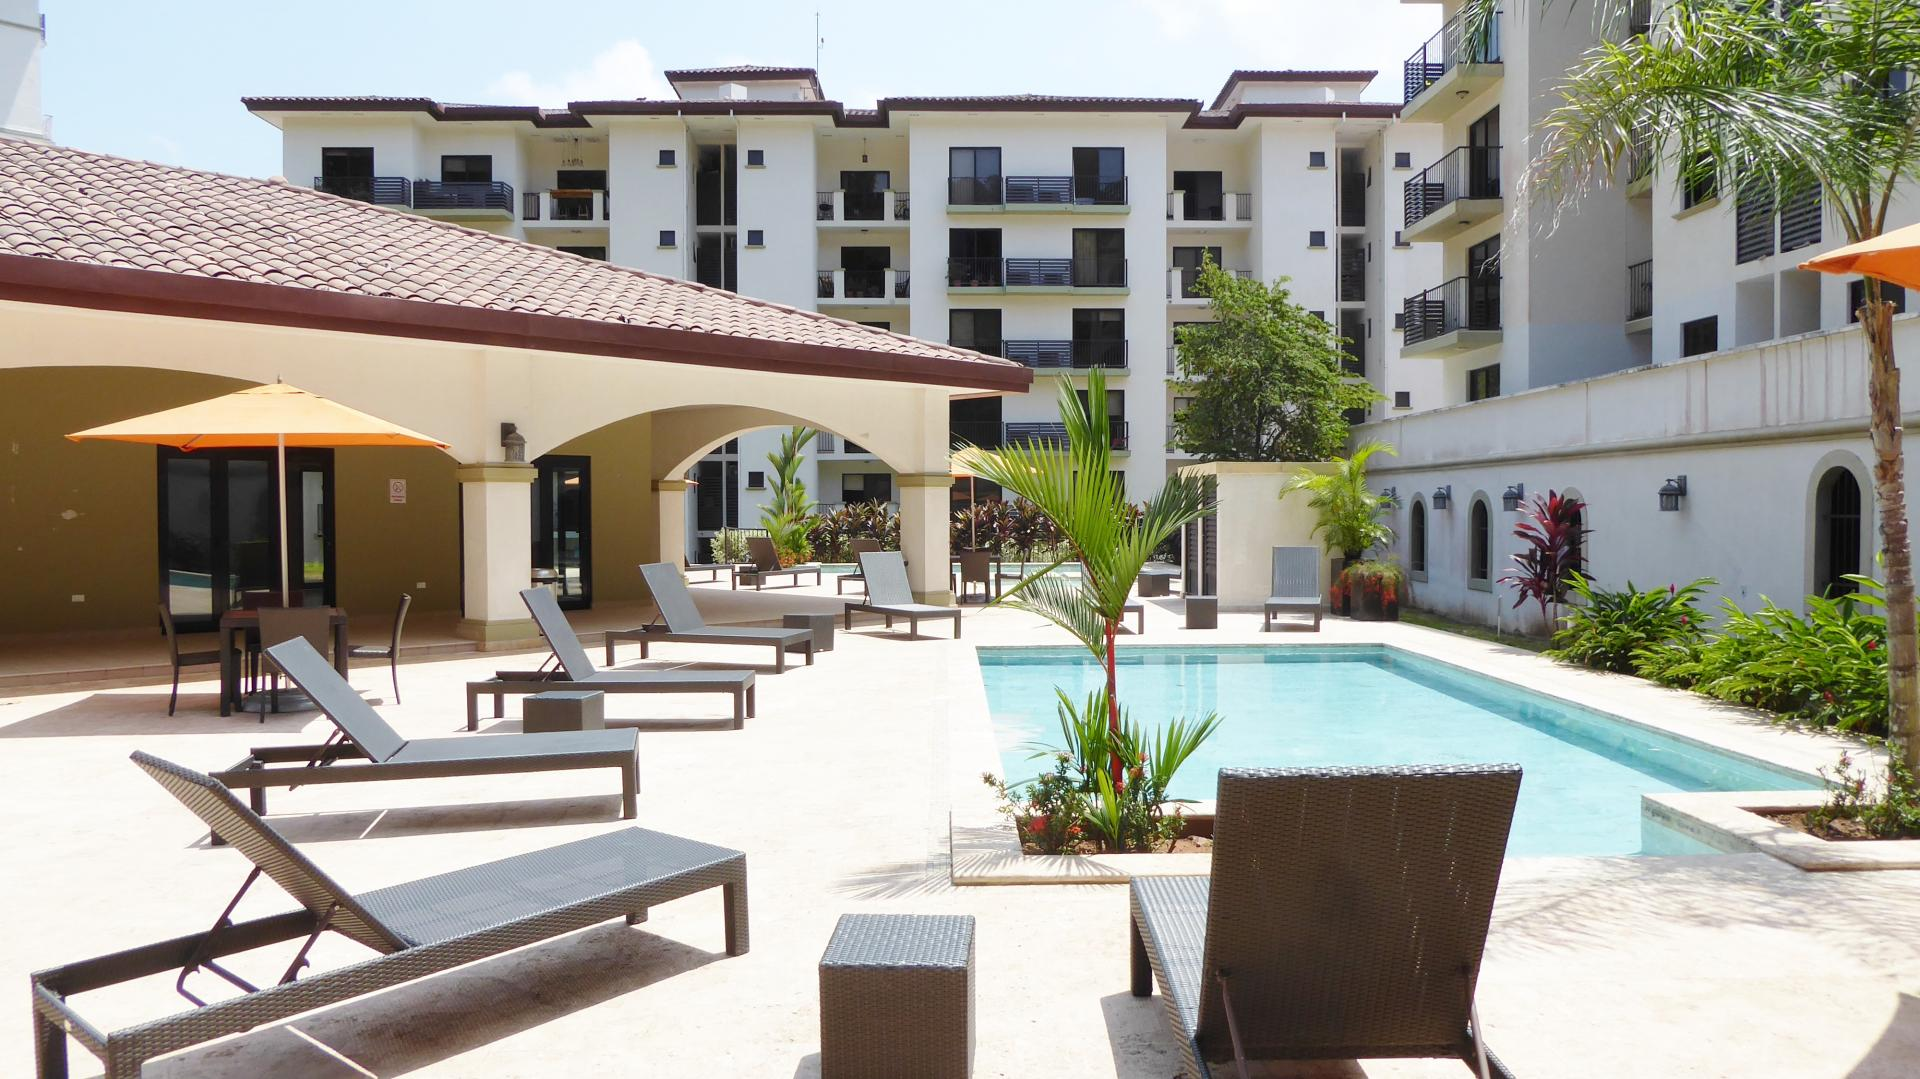 PANAMA CITY CLAYTON EMBASSY VILLAGE  3BDRM COUNTRYSIDE